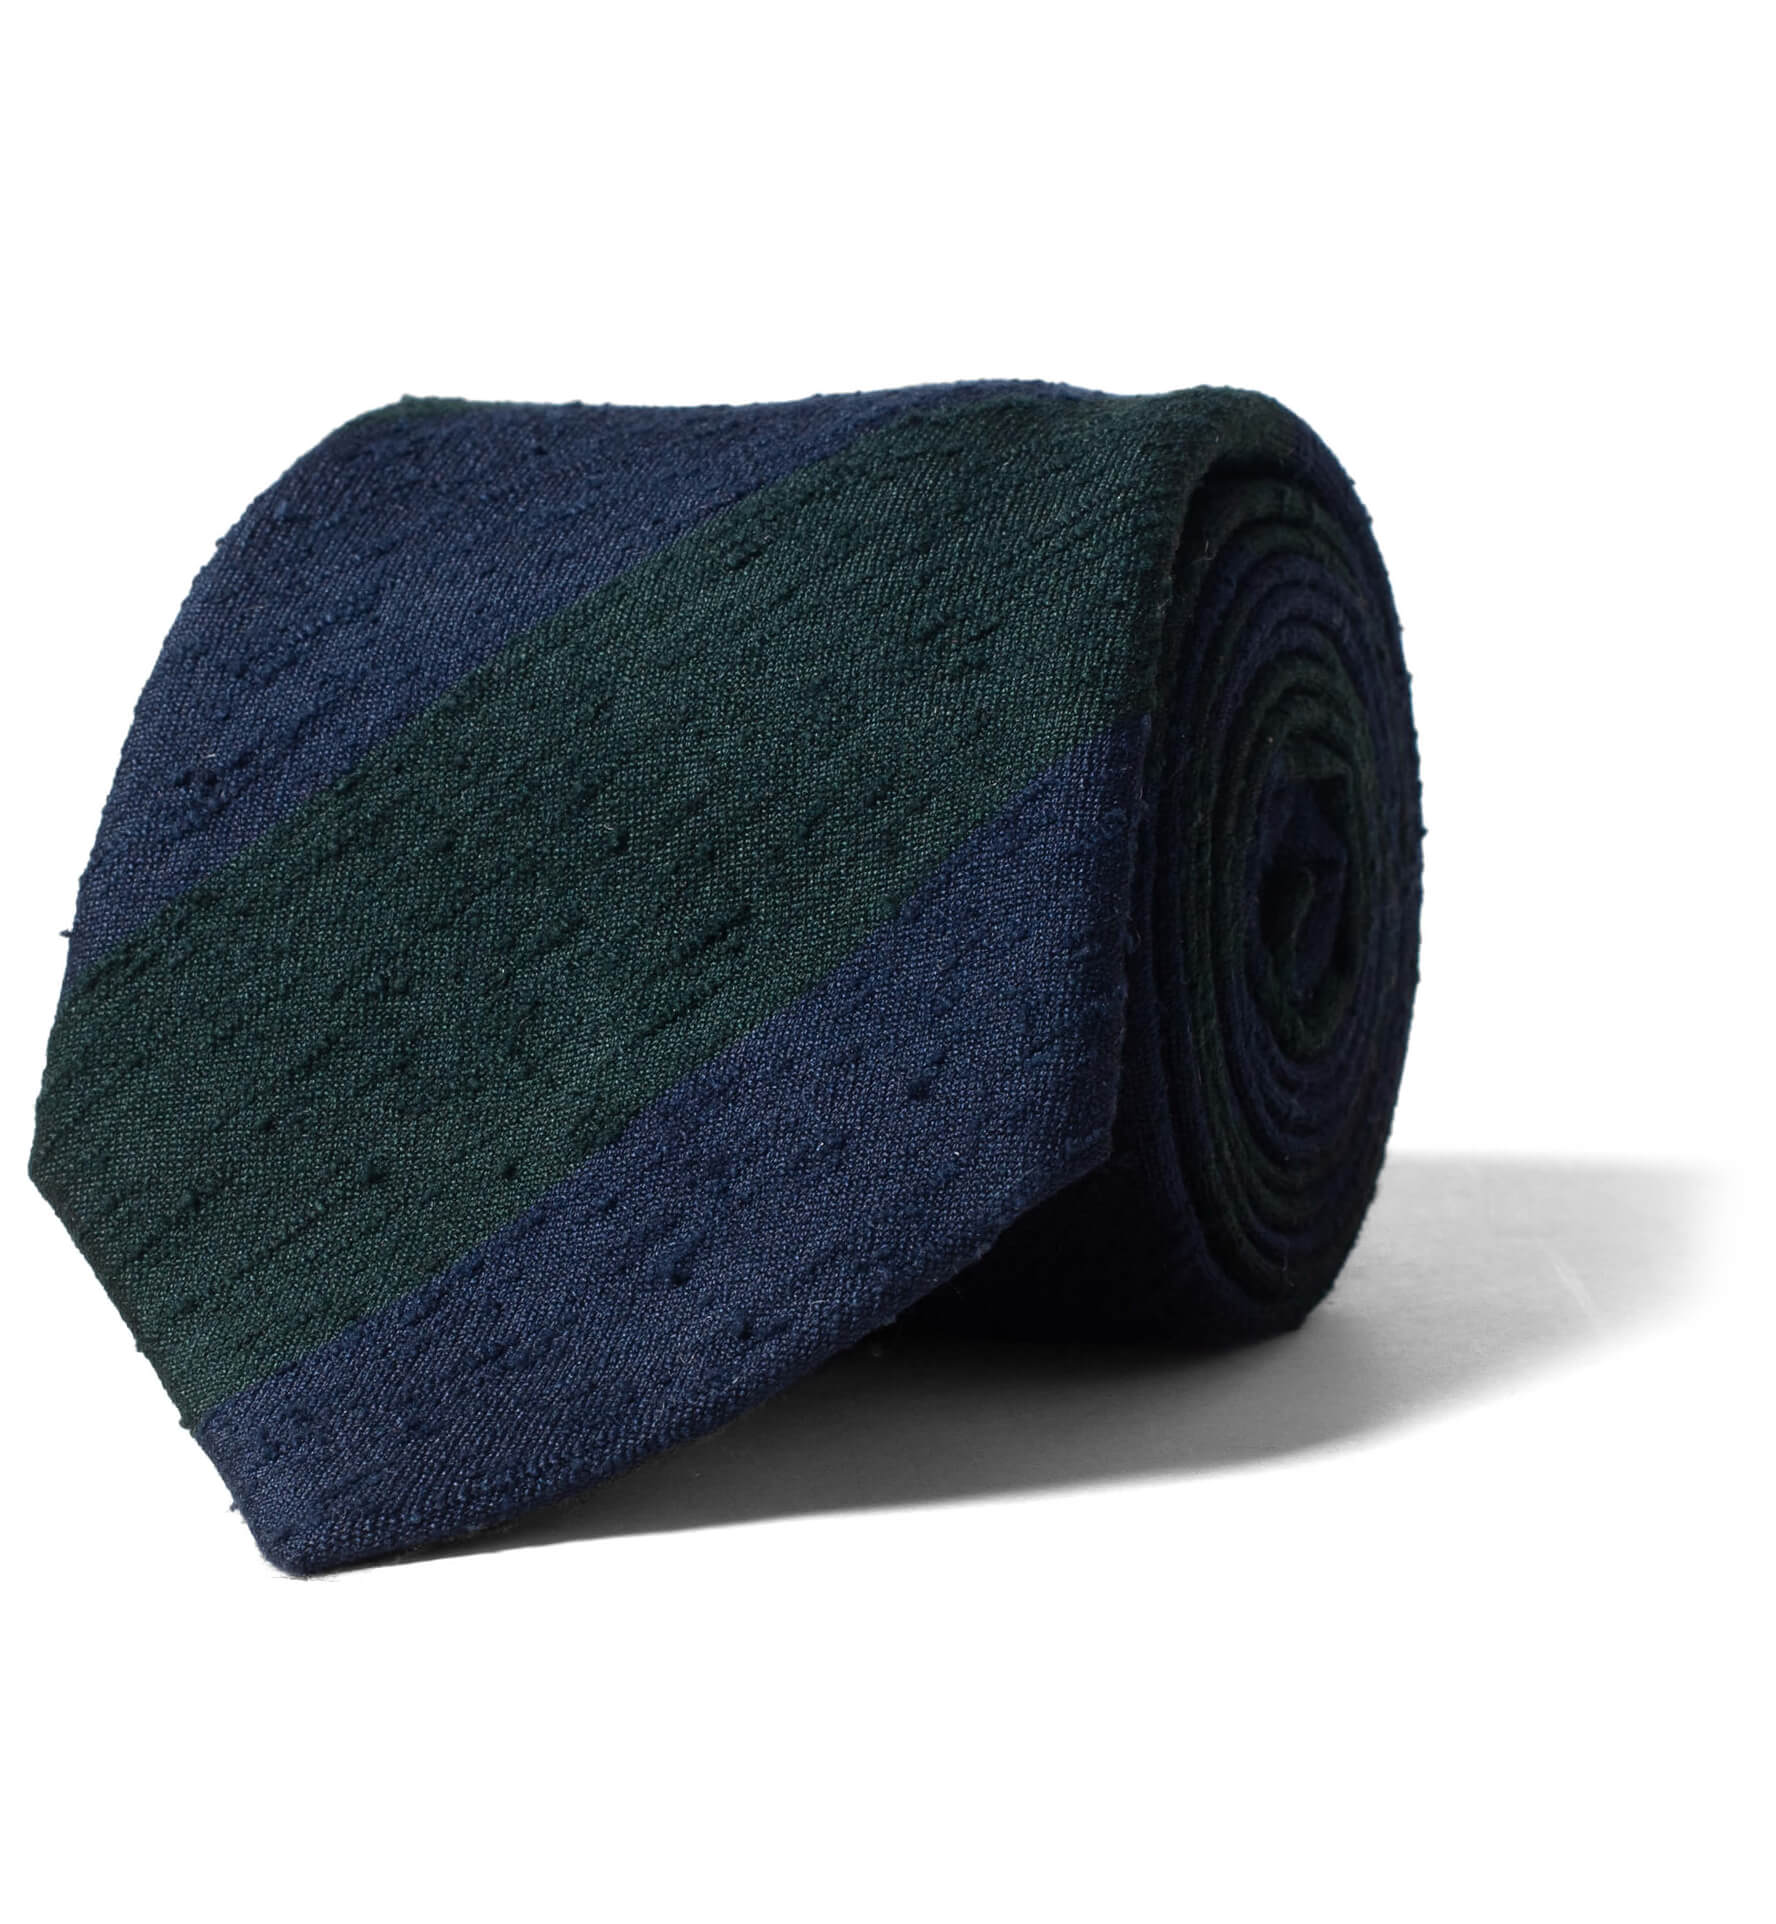 Zoom Image of Navy and Green Shantung Stripe Tie